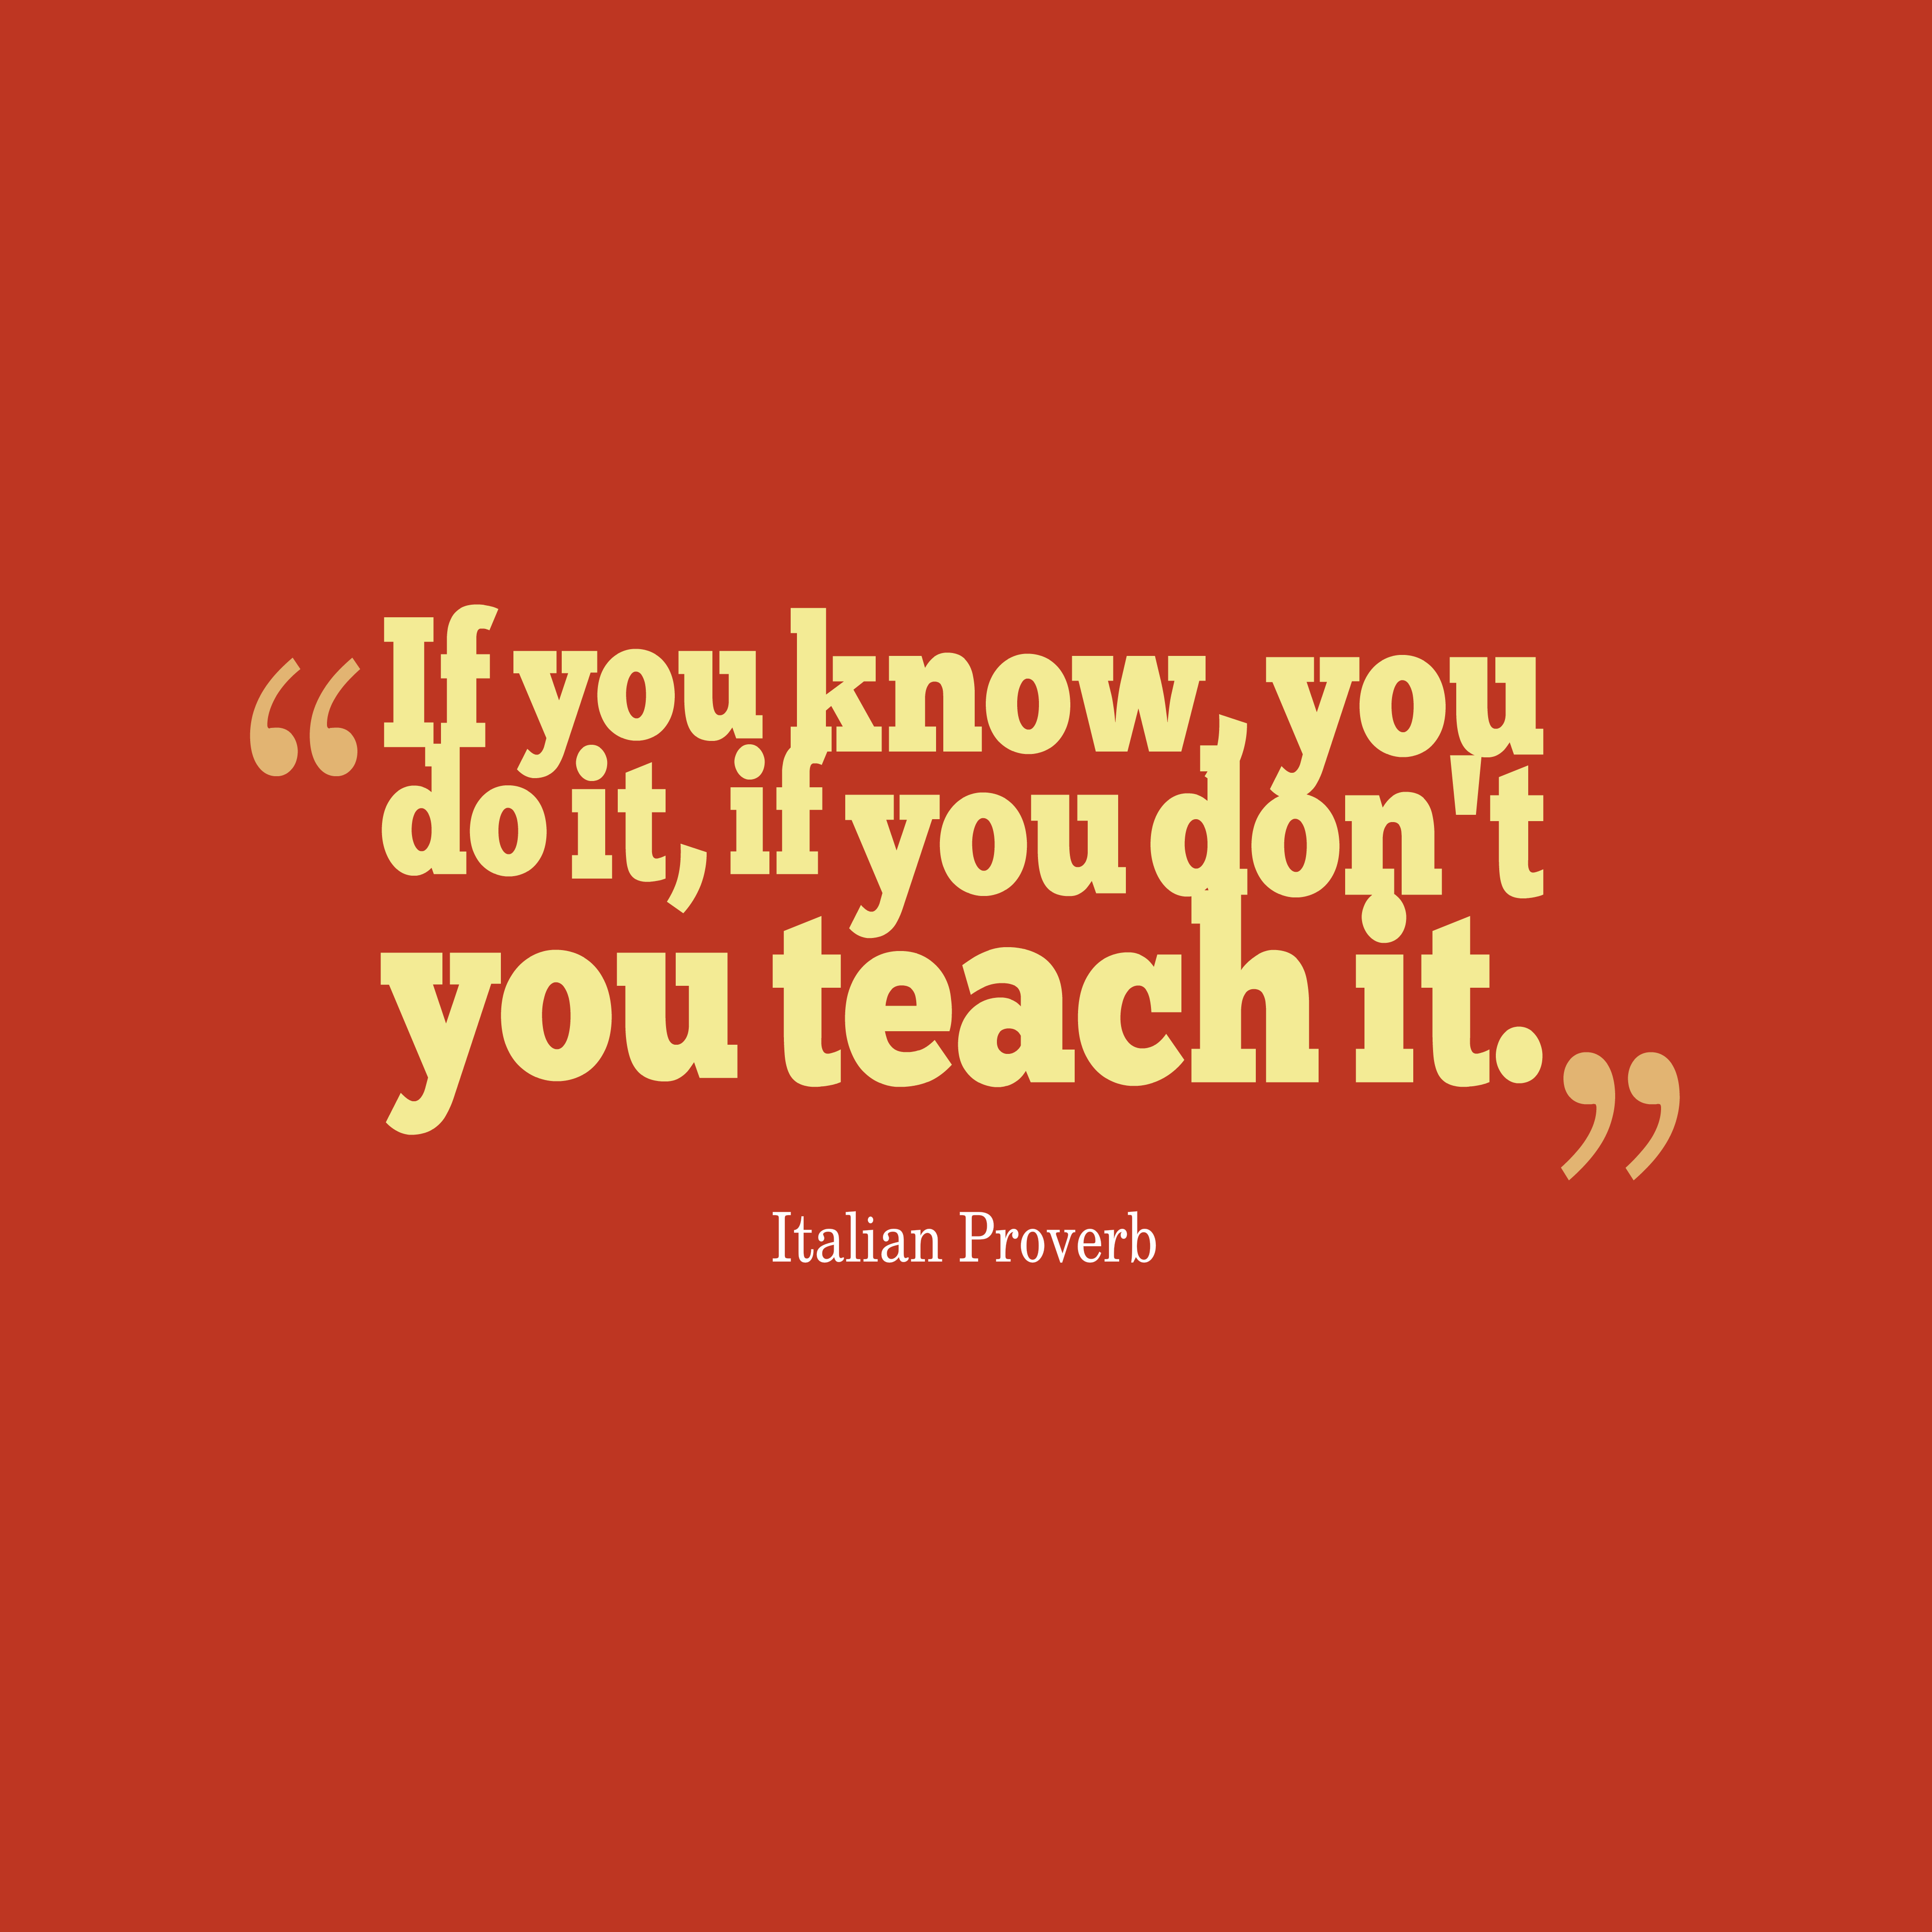 know your content and how to teach it